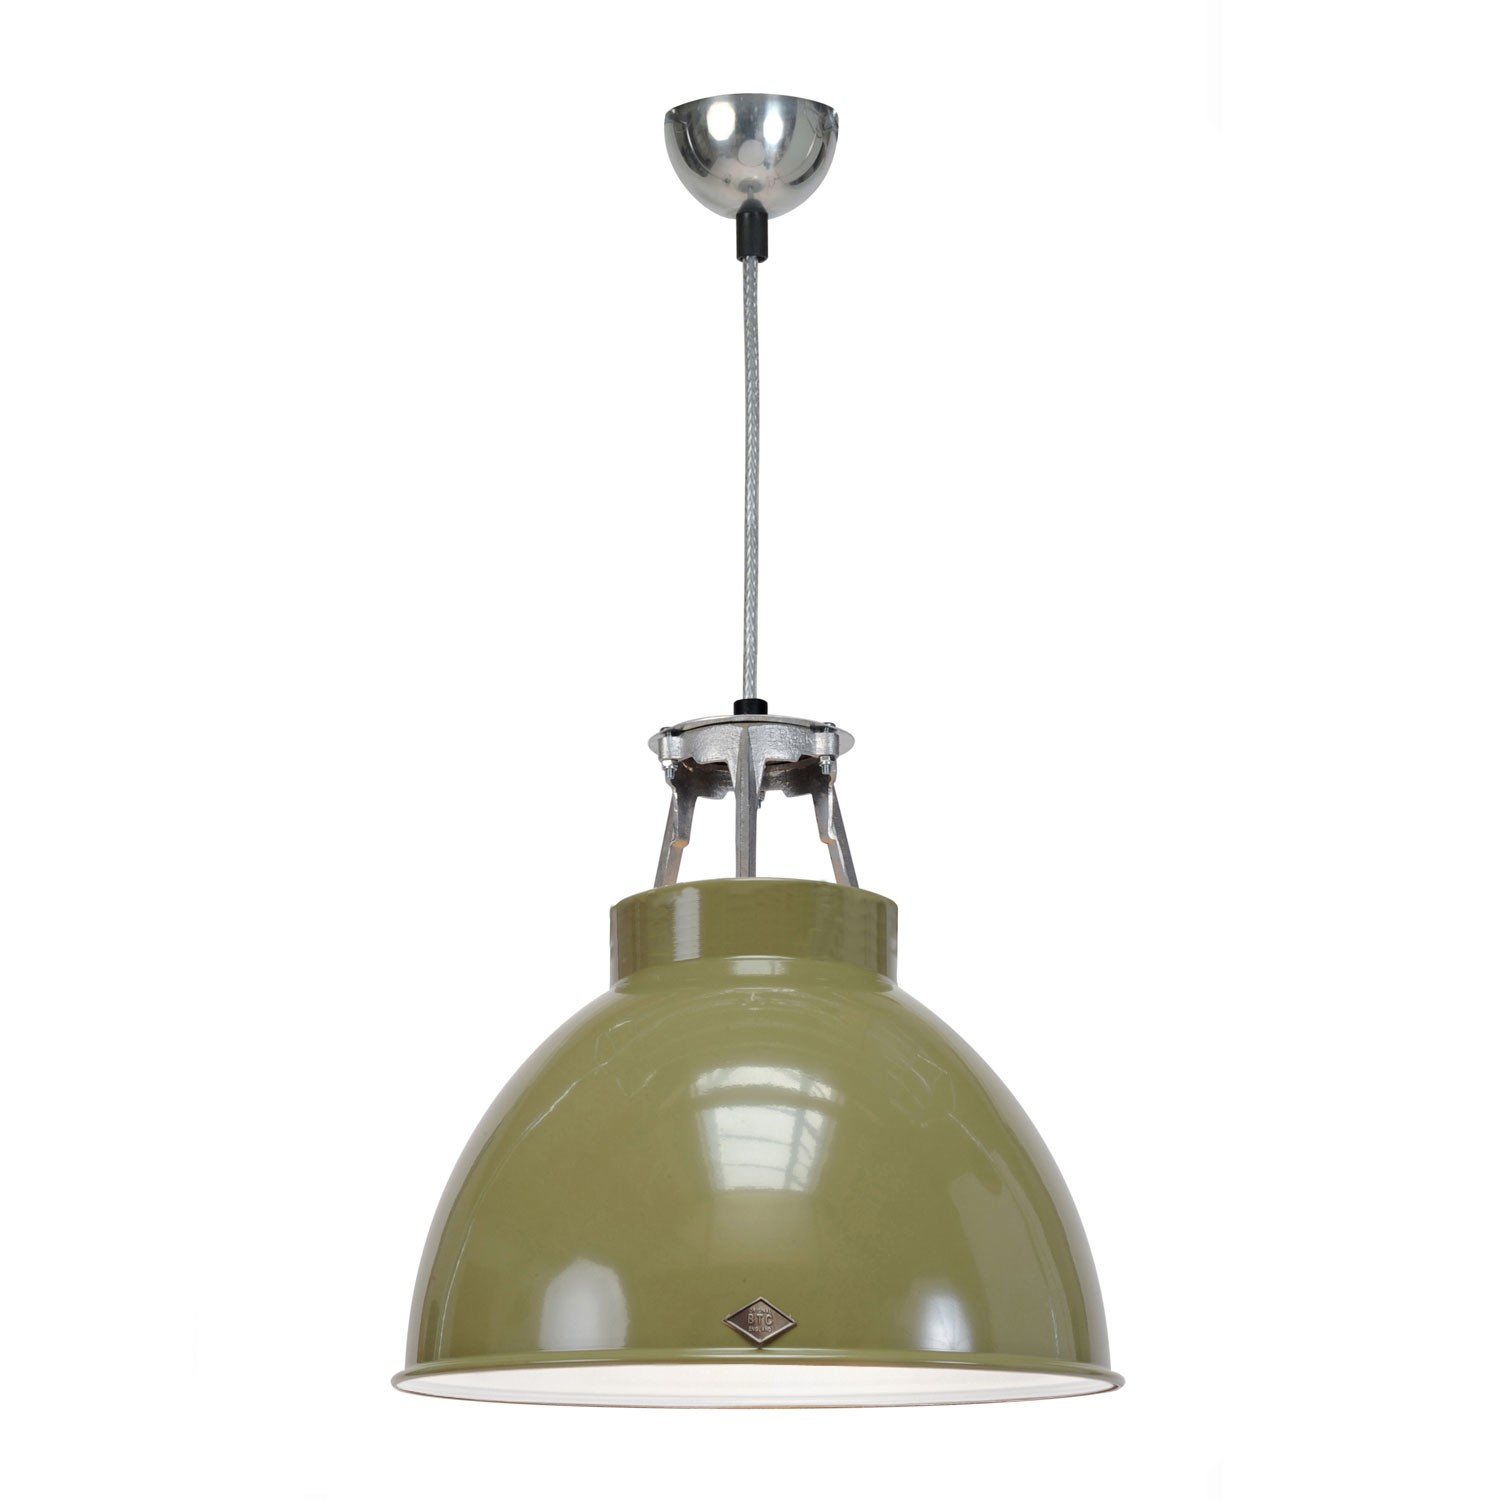 Titan Size 1 Pendant Light Olive Green with White Interior